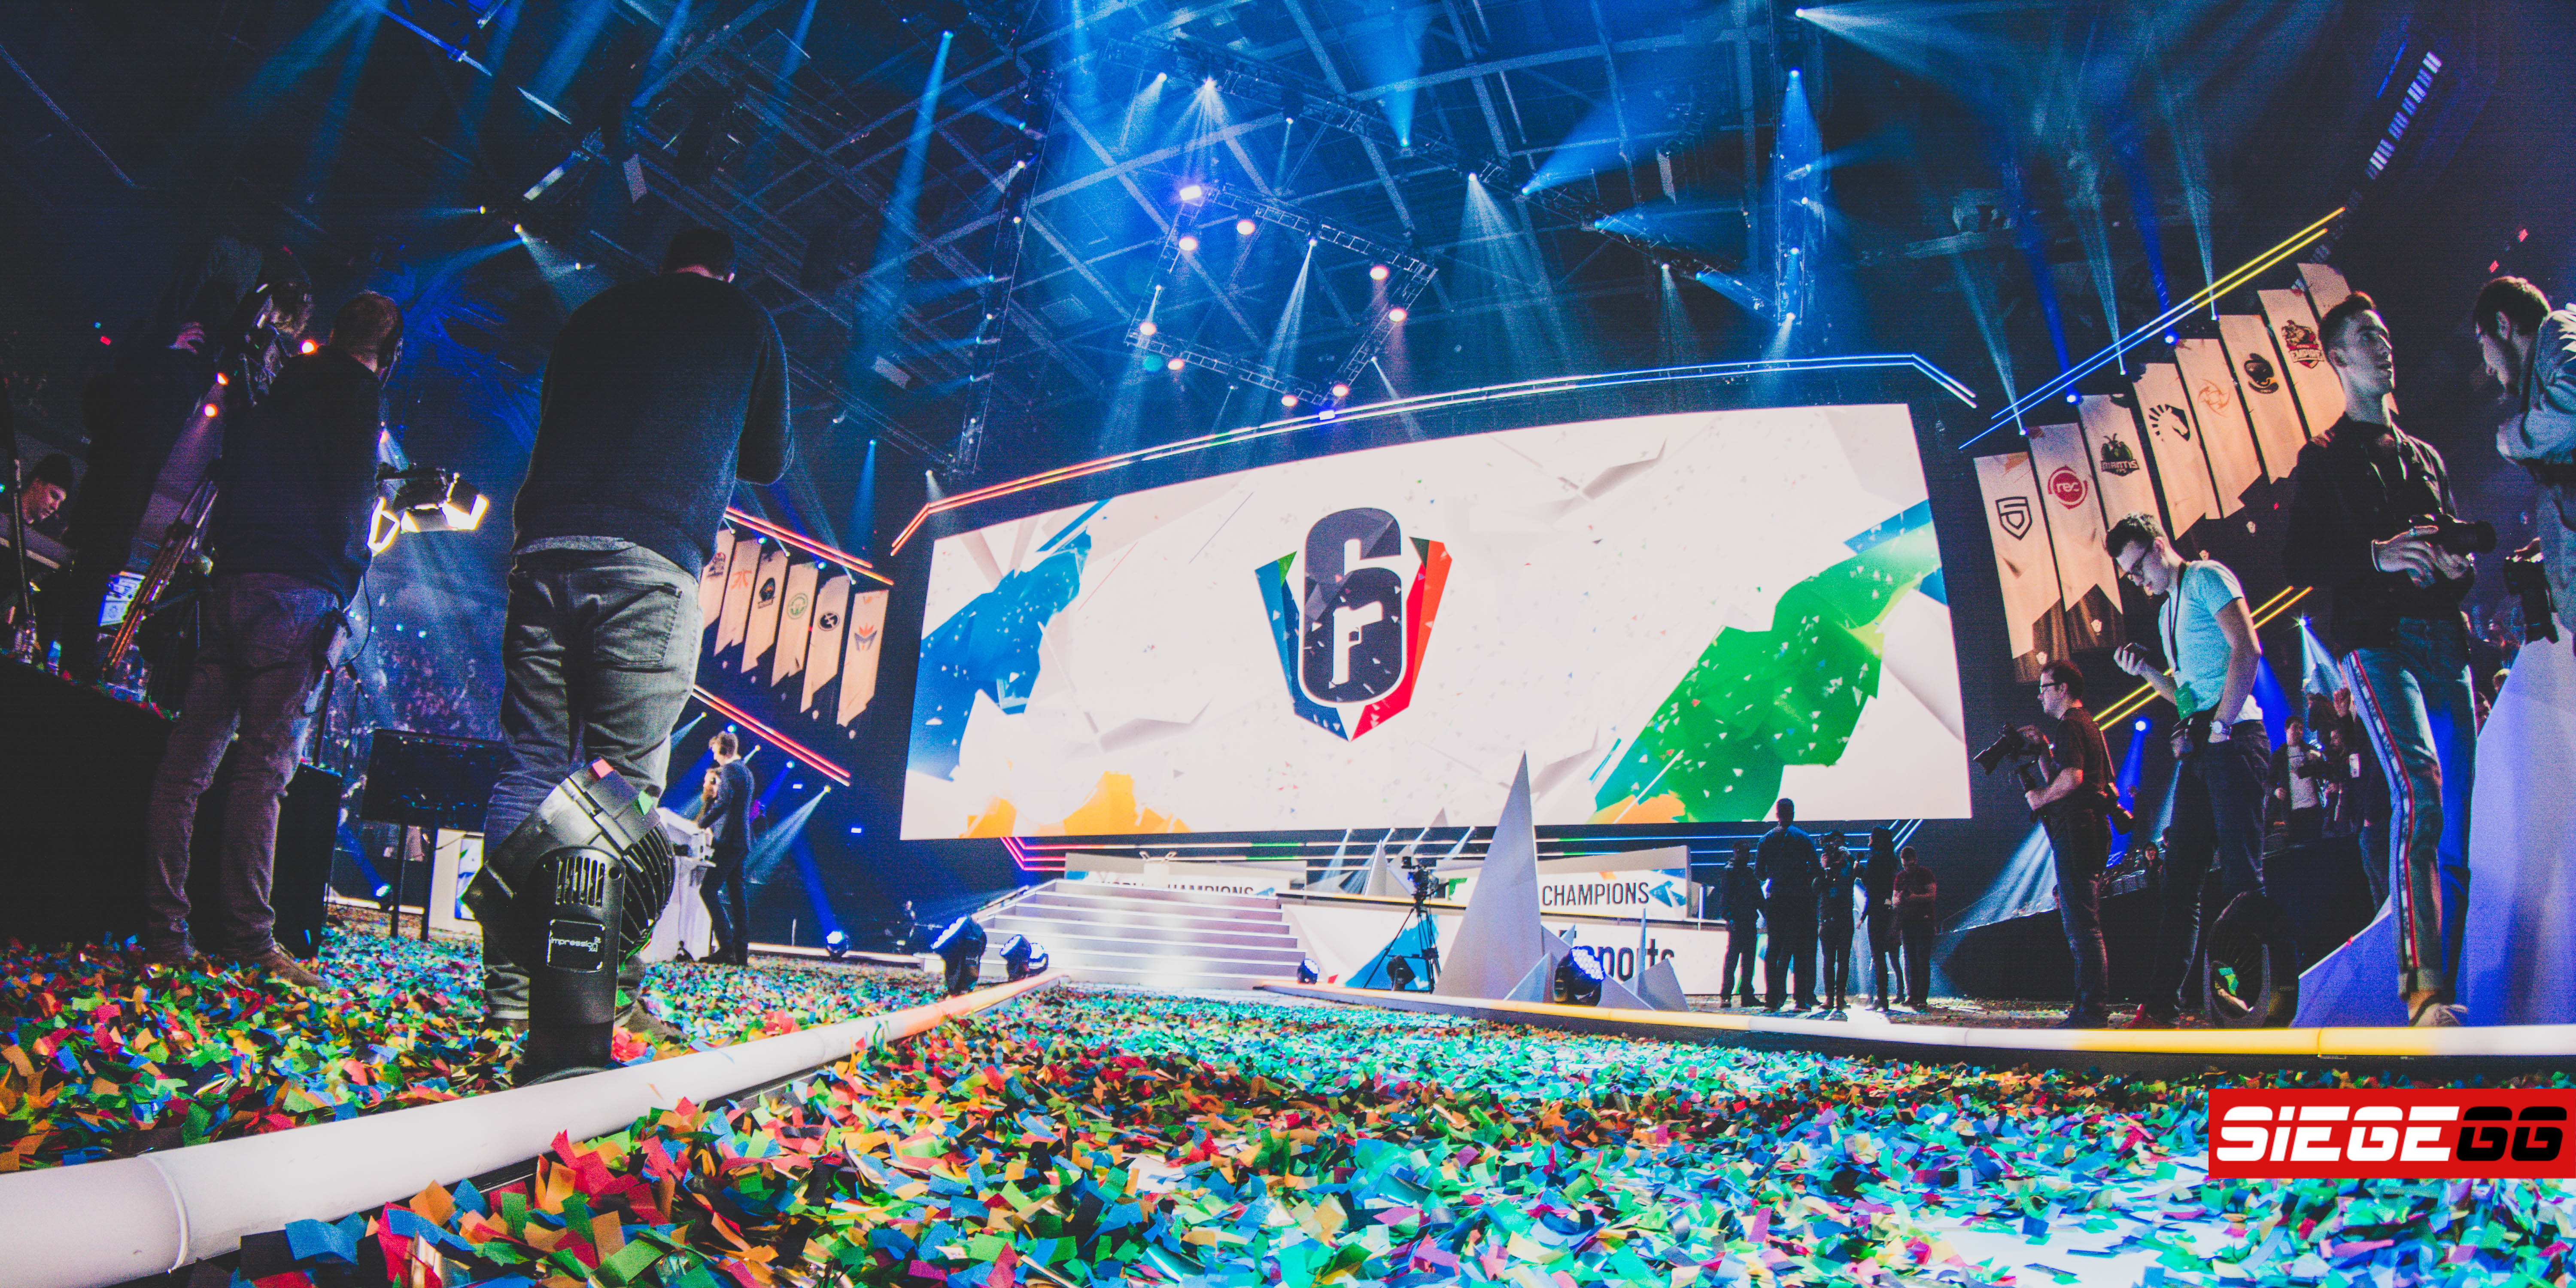 Six Invitational 2020 Qualifiers - The Final Countdown